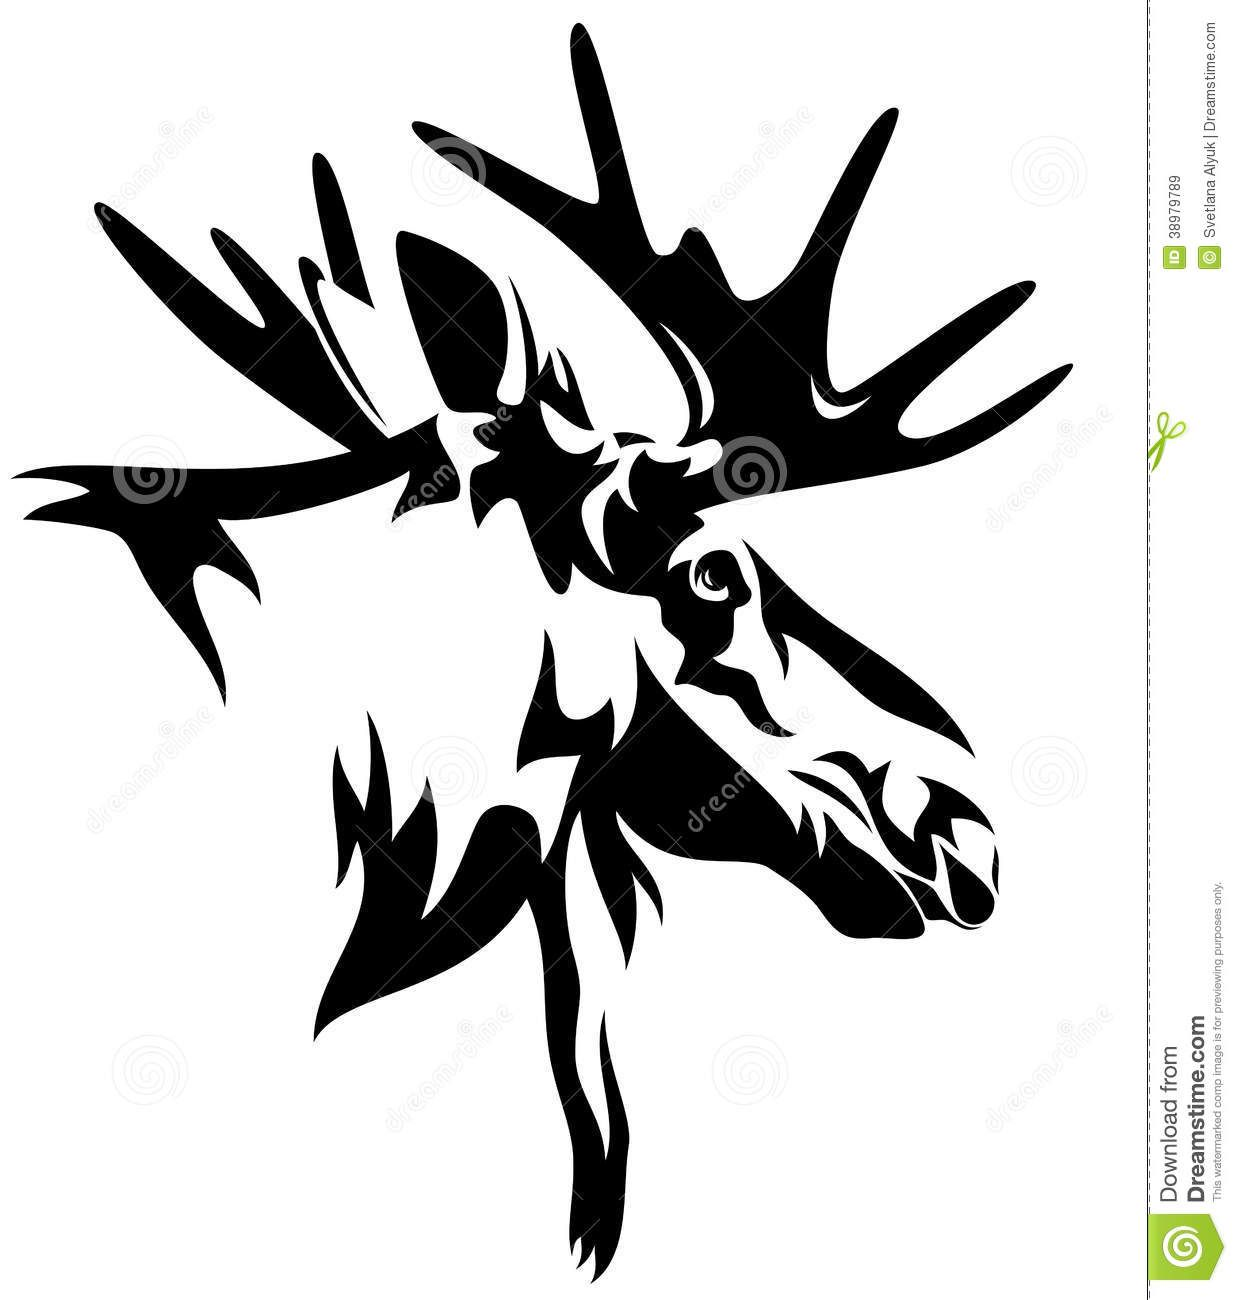 Moose clipart realistic cartoon. Pin by kim somerville